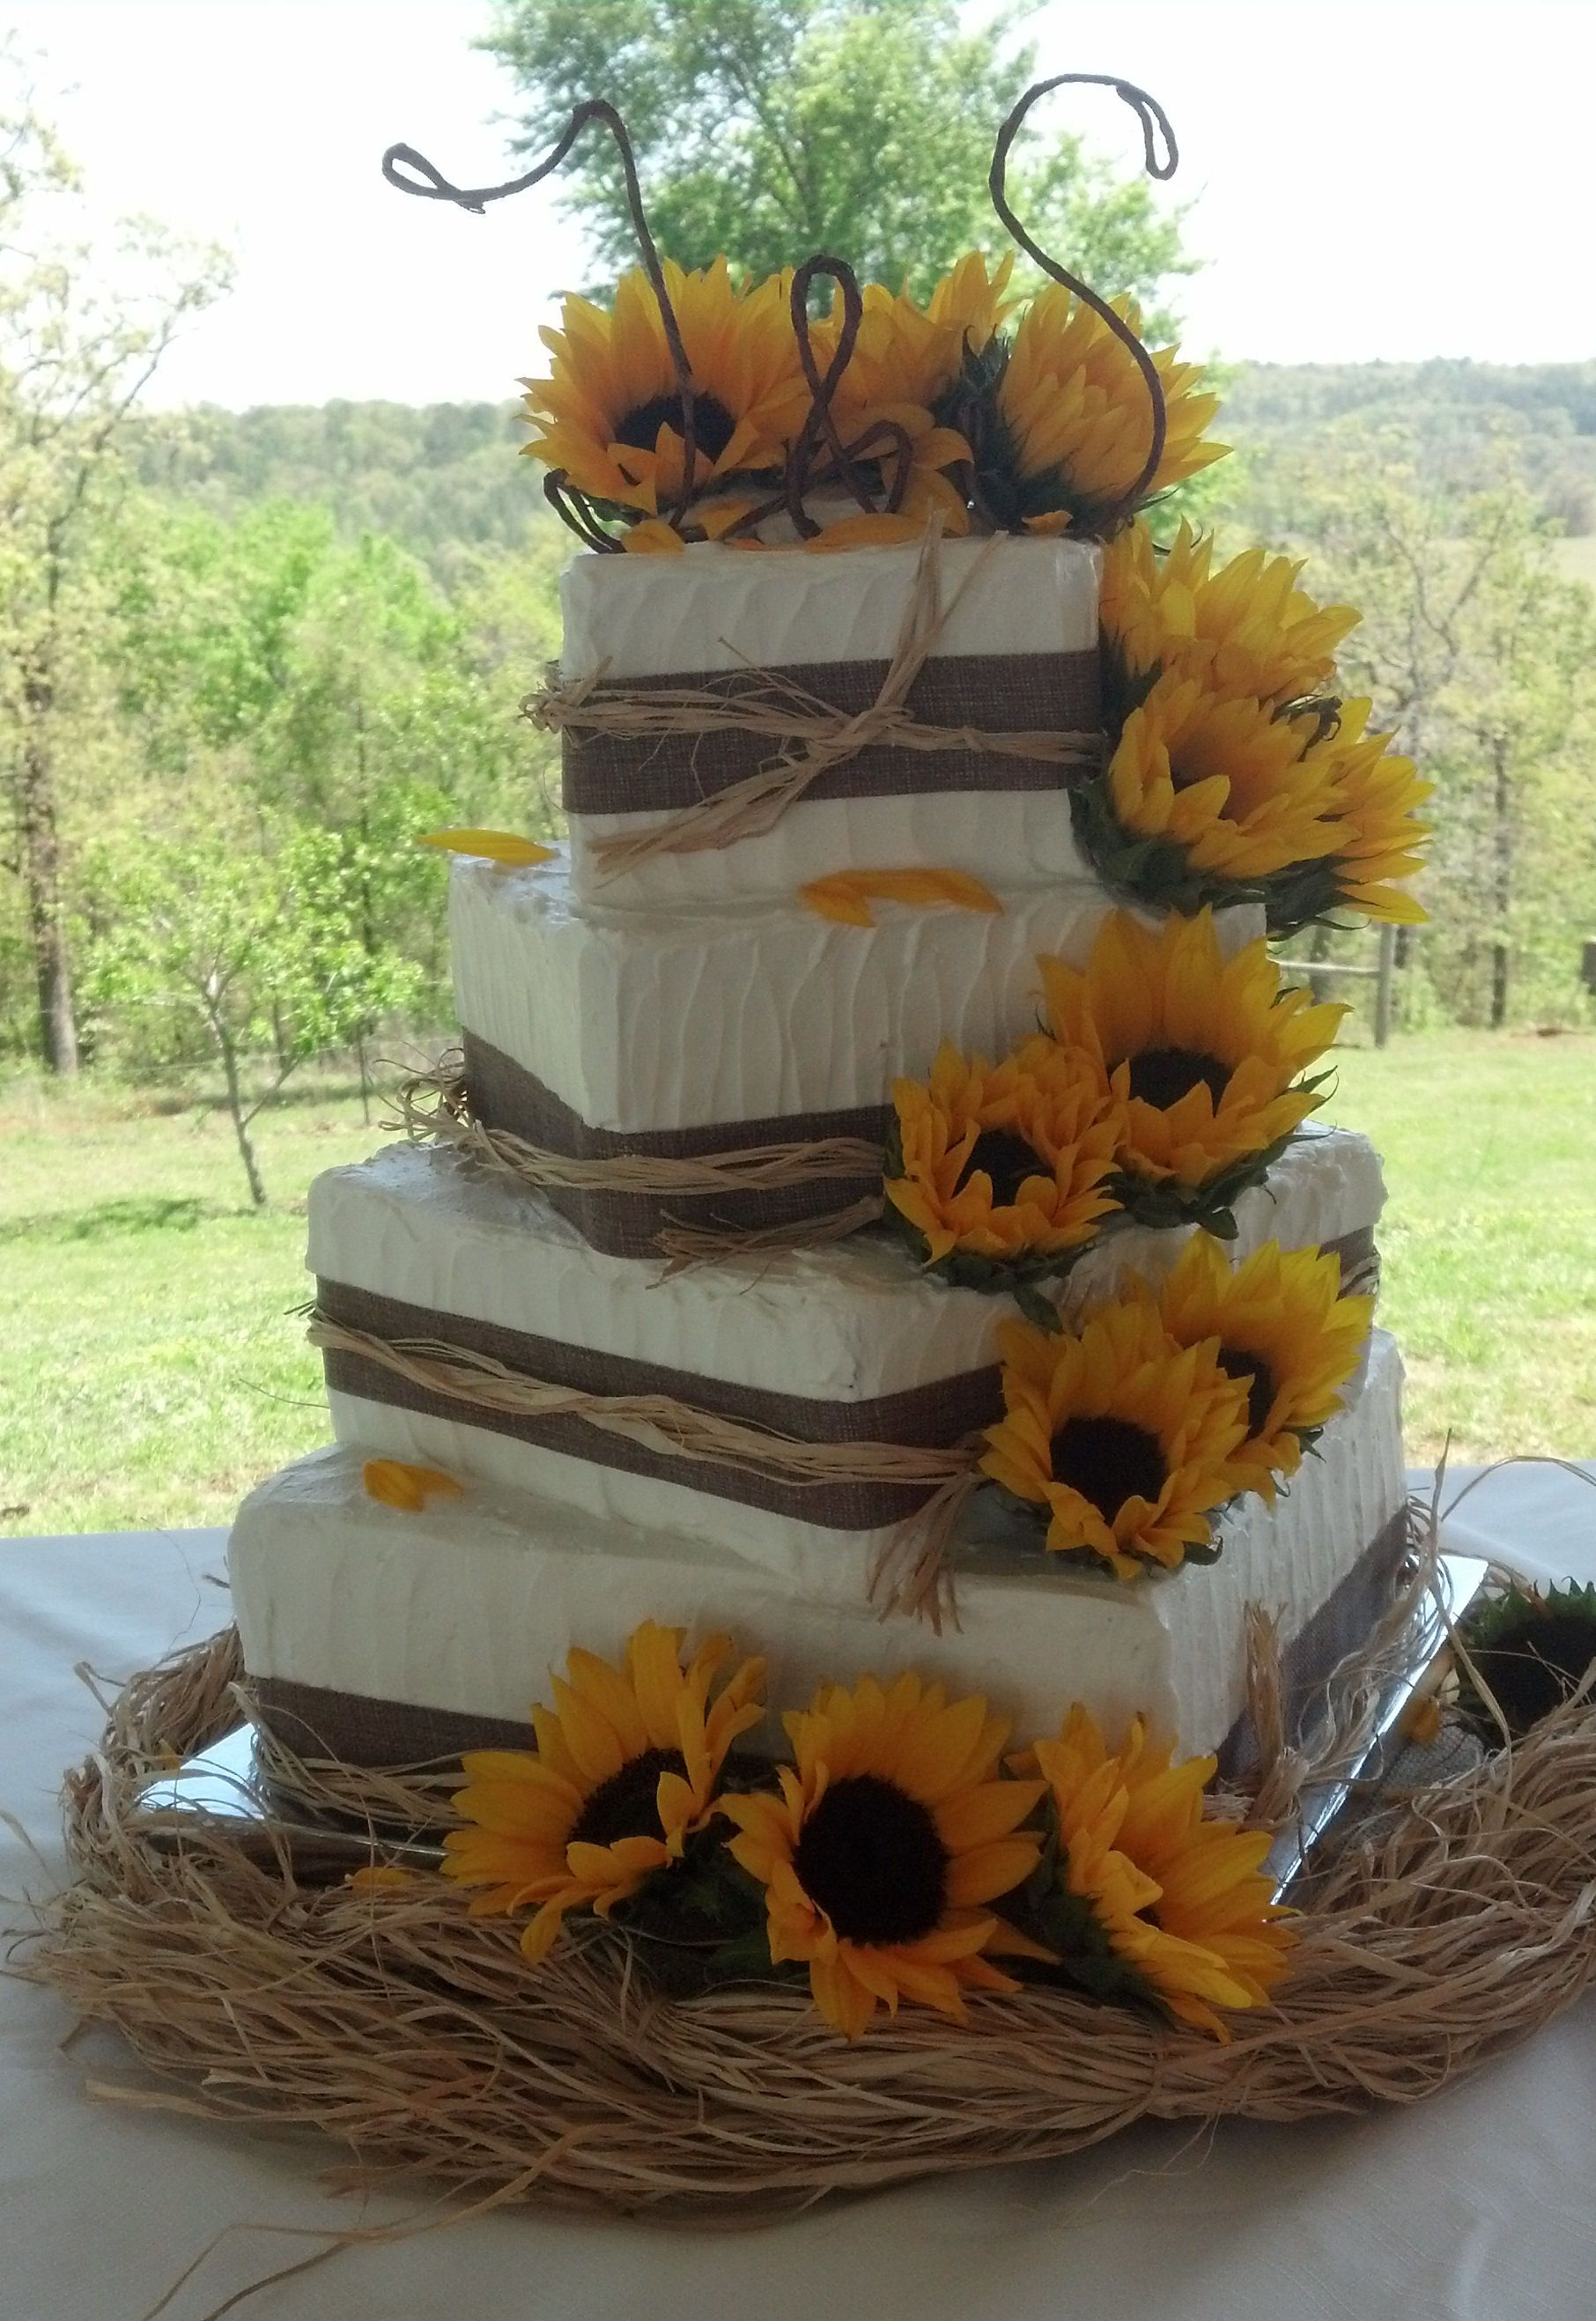 Loooovvveeee this wedding cakegoes perfect with our theme